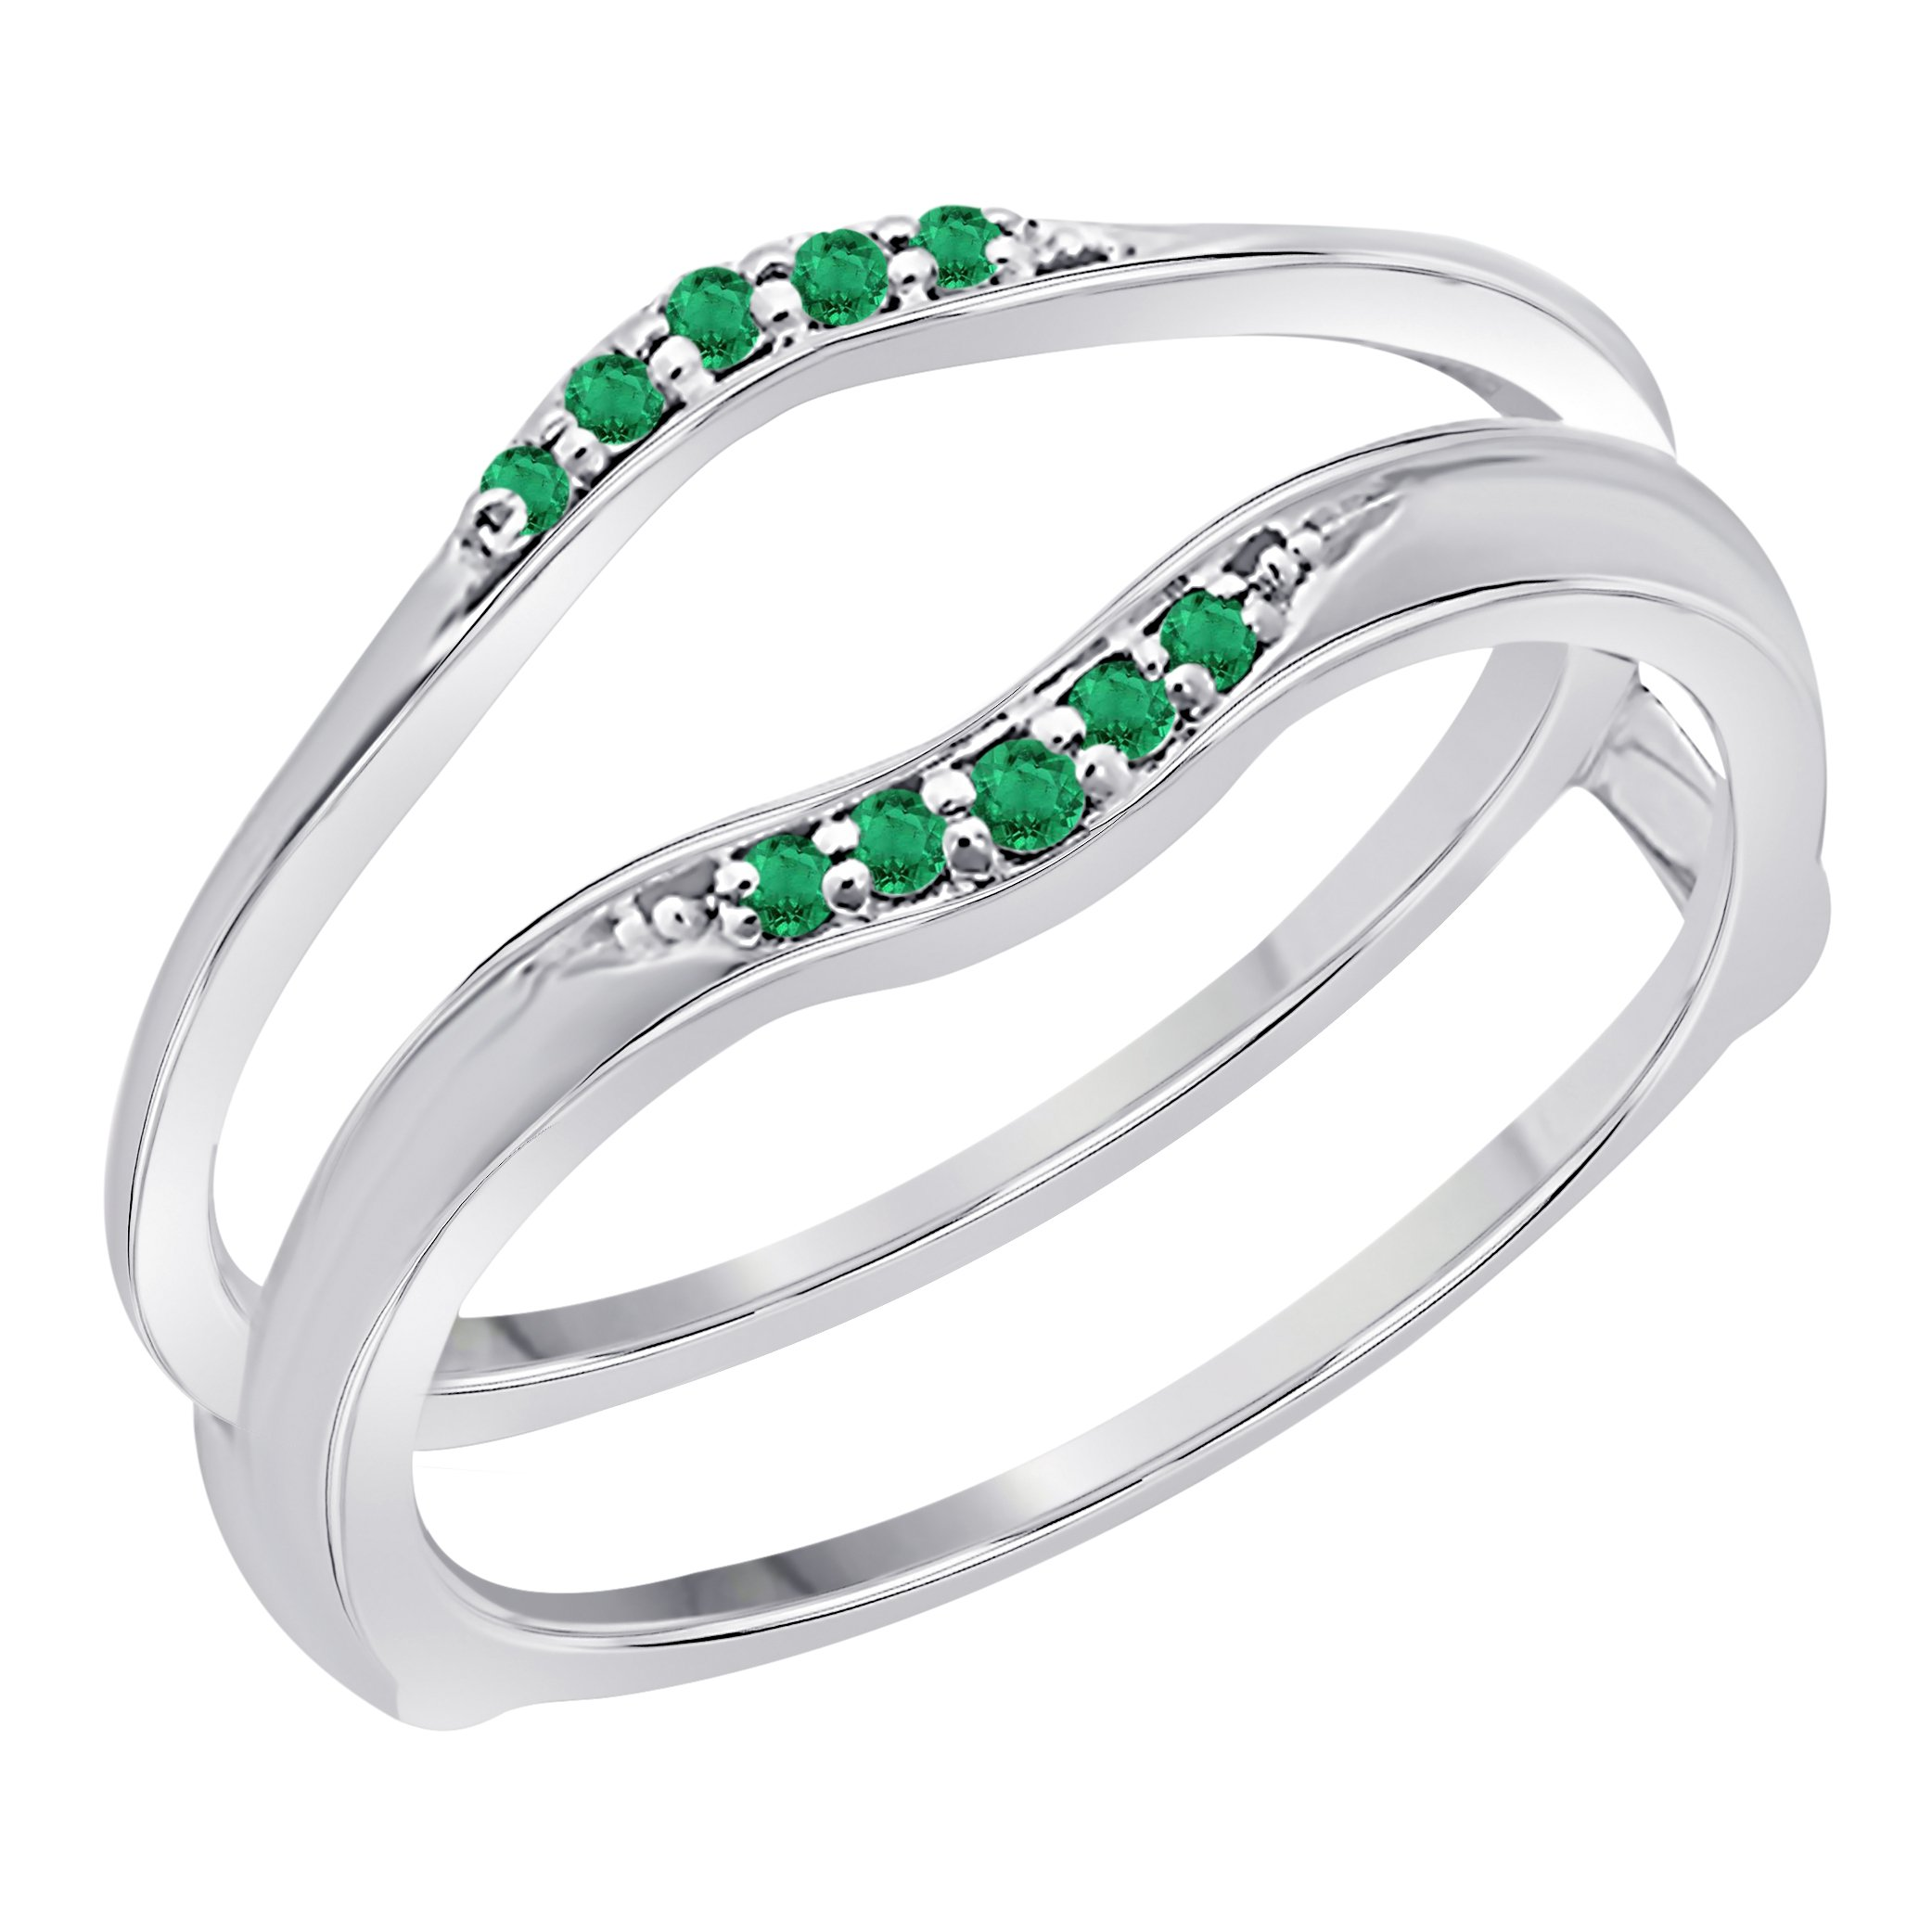 Sterling Silver Plated Delicate Combination Curved Style Vintage Wedding Ring Guard Enhancer CZ Green Emerald (1/6 ct. tw.)